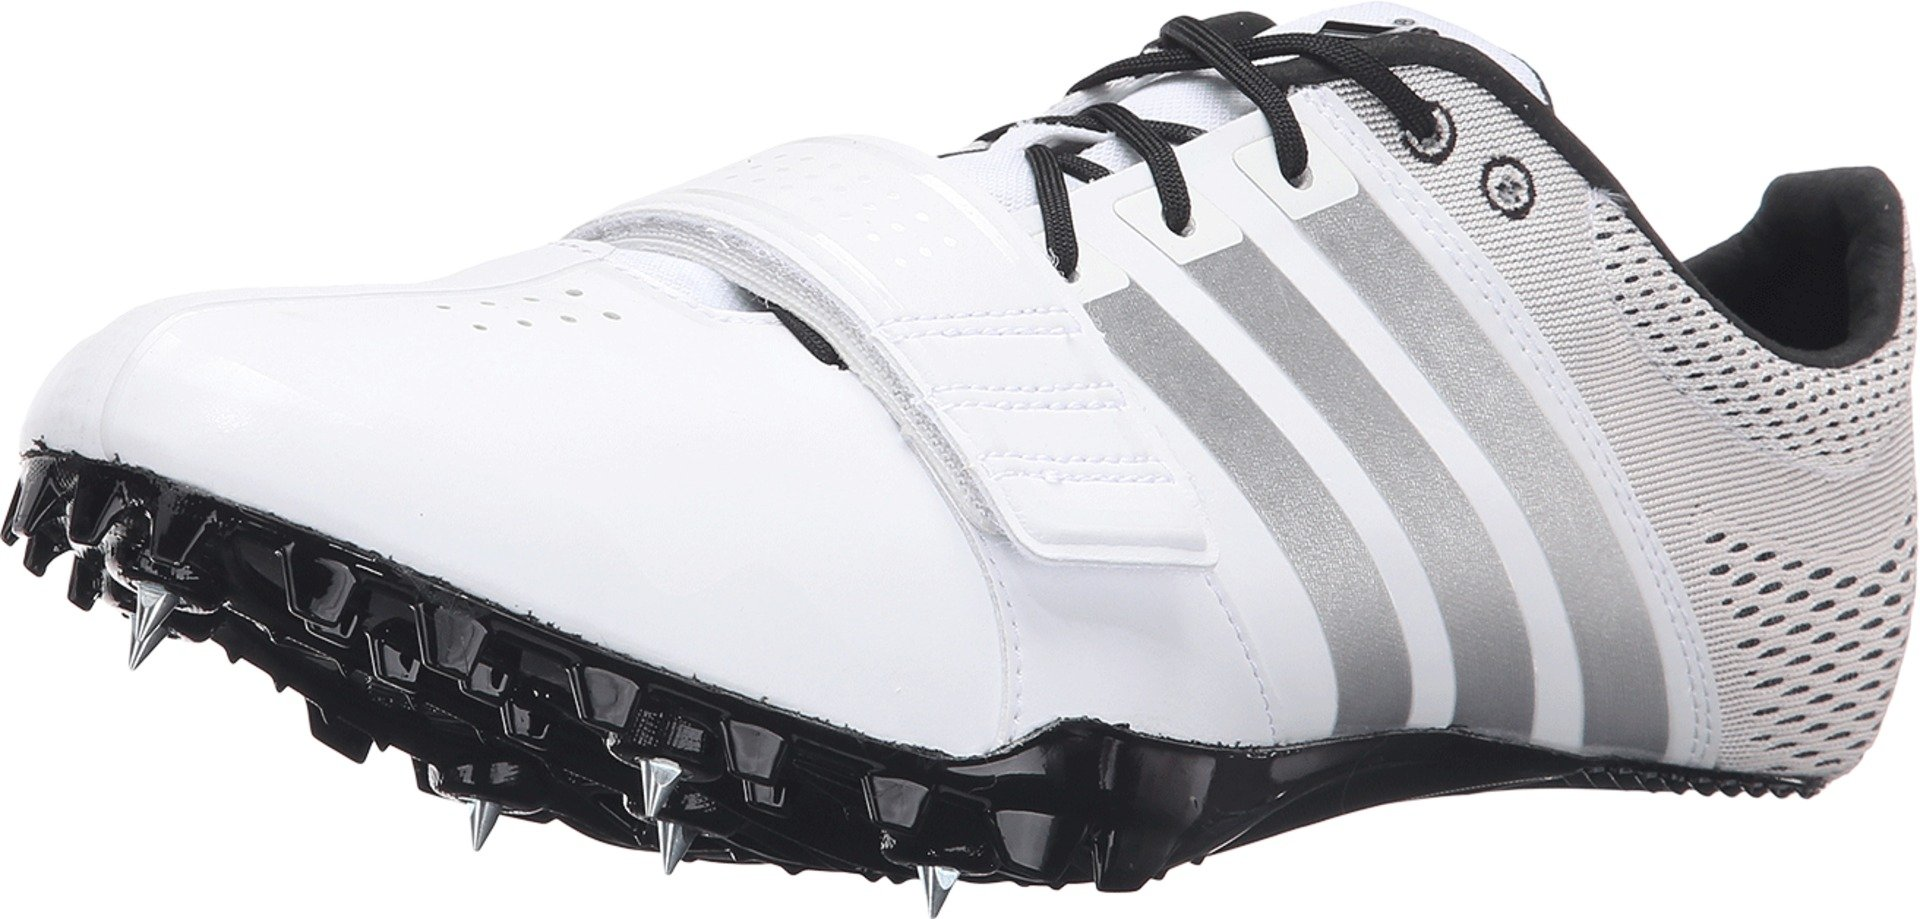 adidas Originals Adizero Accelerator Running Shoe, White/Silver/Black, 11.5 M US